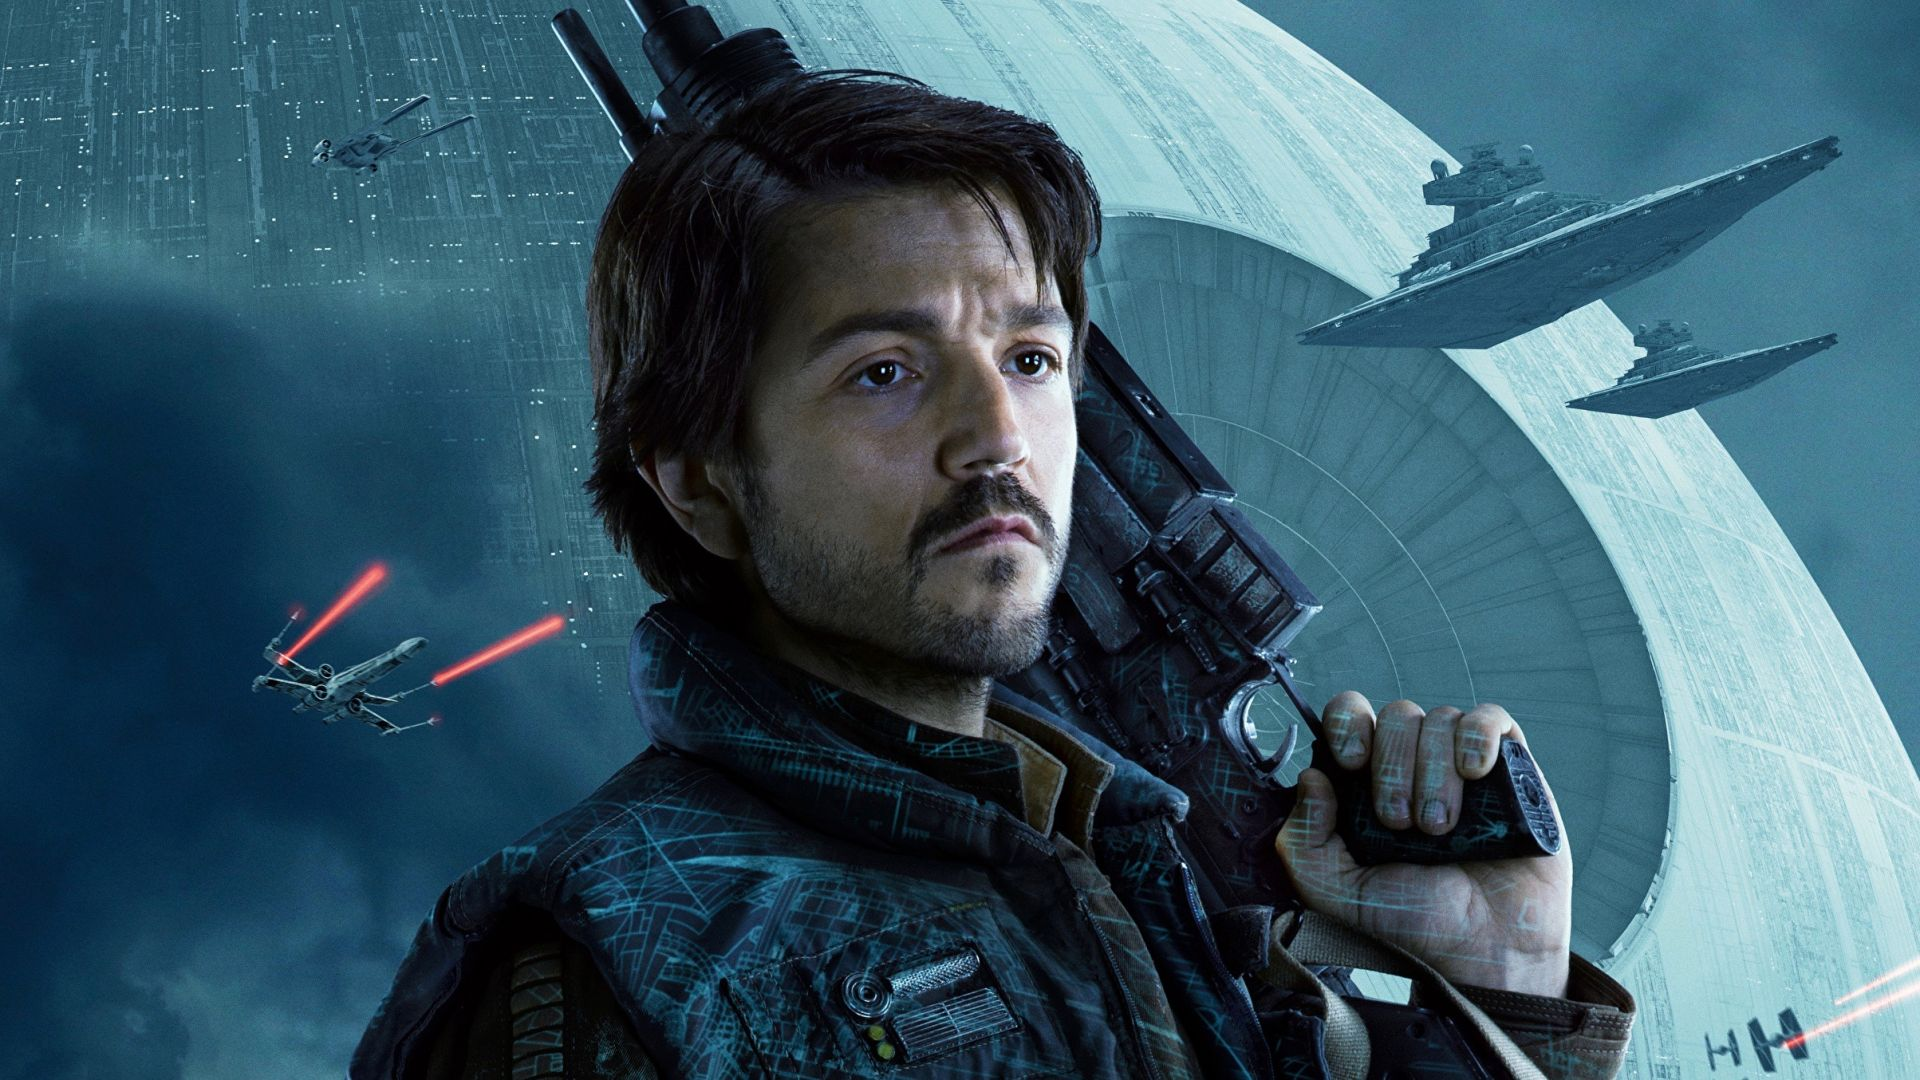 Rogue_One_A_Star_Wars_Story_Men_Rifles_Cassian_533128_2560x1440